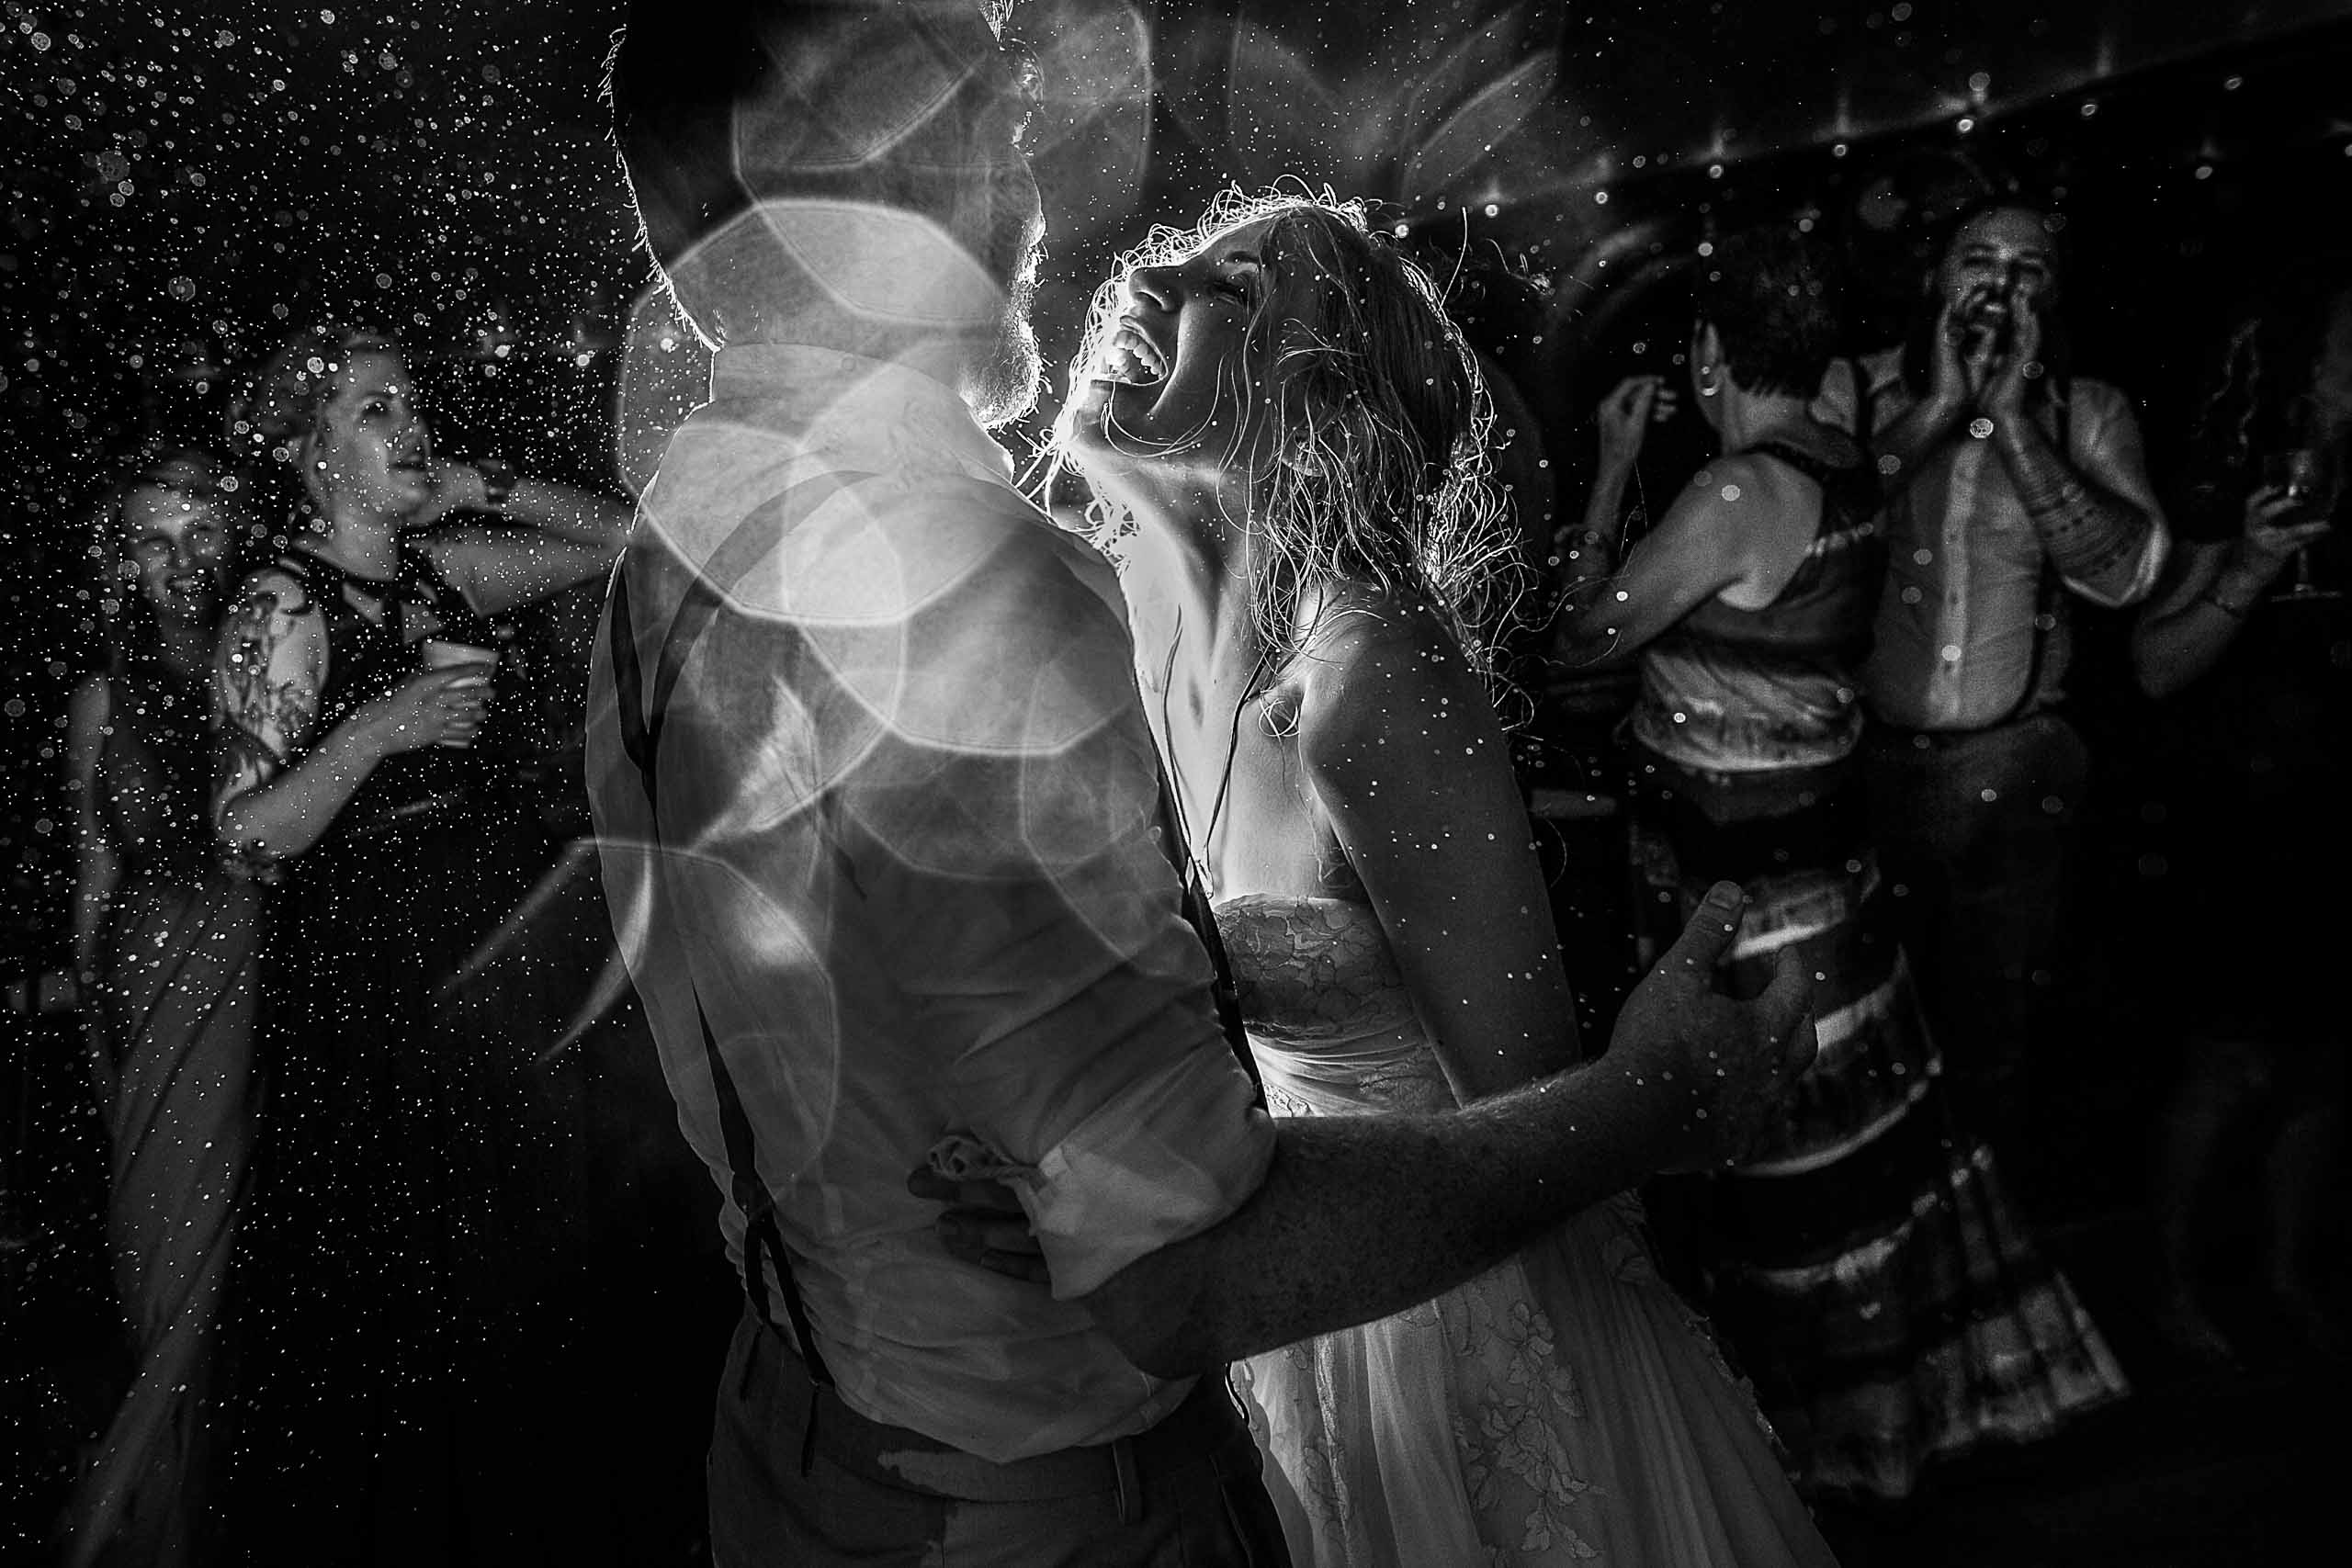 Fearless Photographers award winning photo of a Bride and groom dancing wild in a rain storm during their Chesapeake Bay wedding ceremony in Maryland at Wades Point Inn.